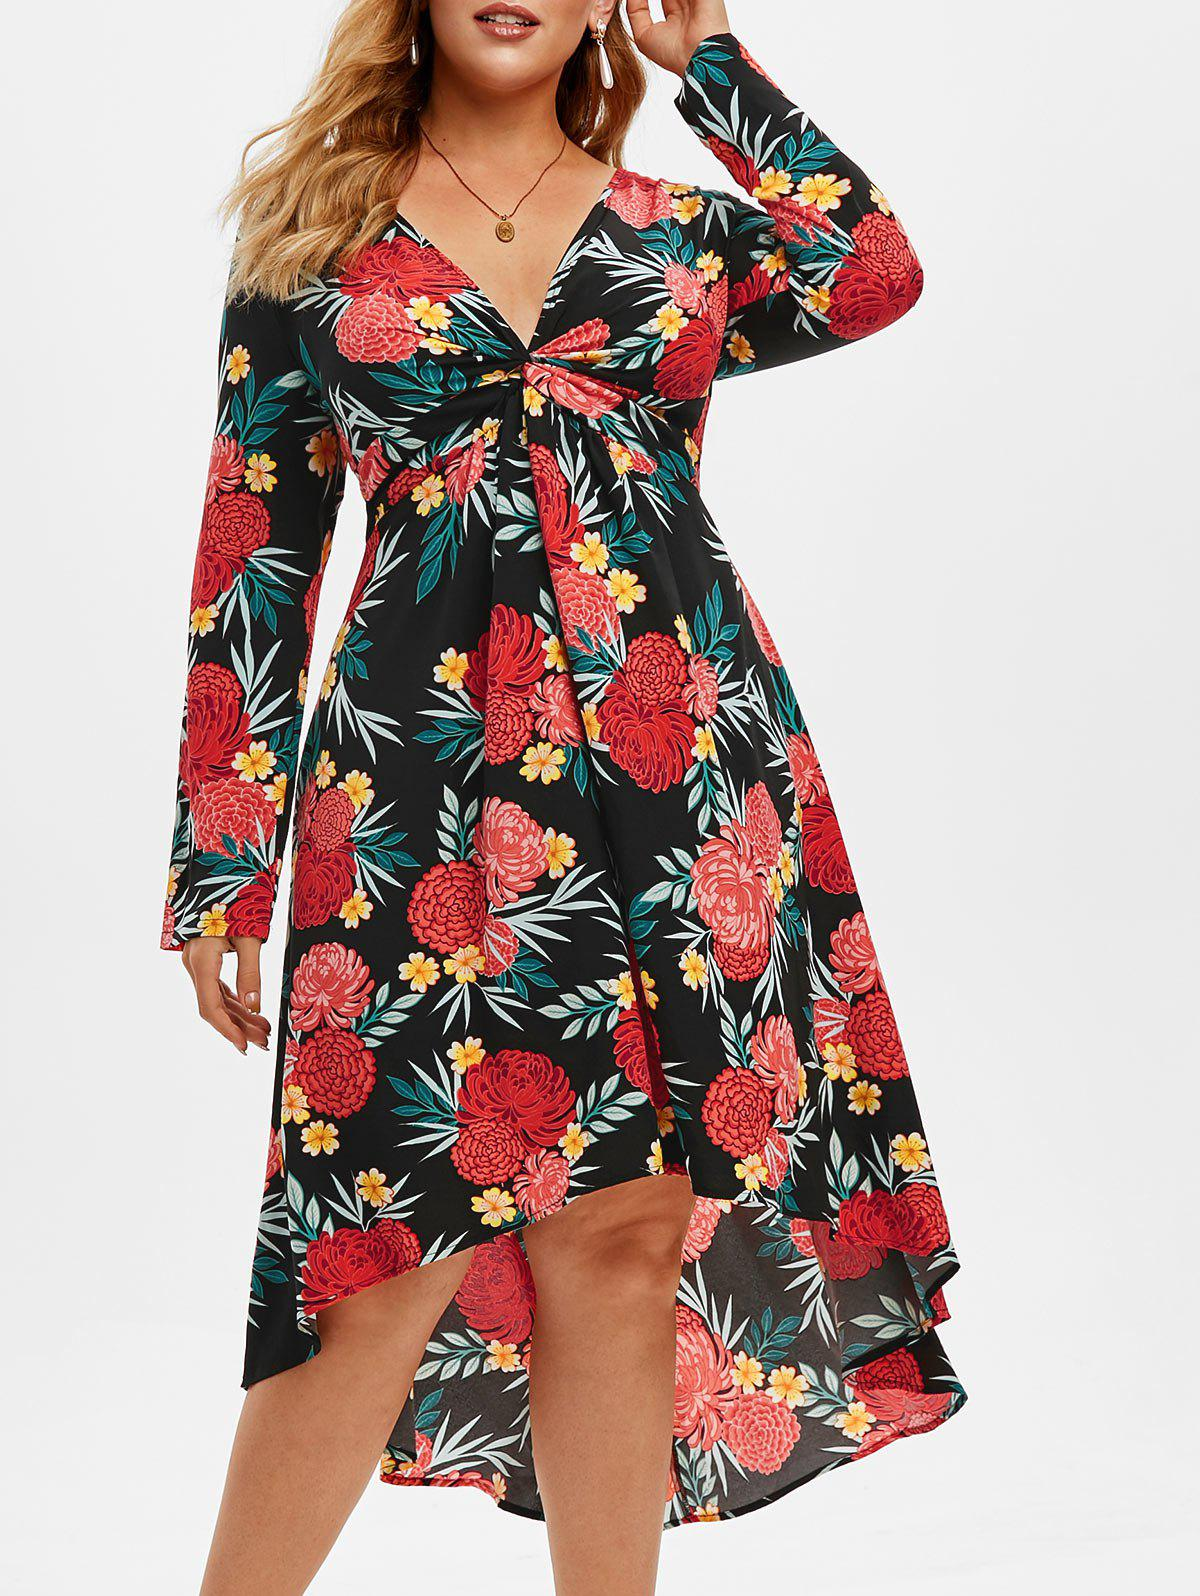 Trendy Plus Size Floral Printed High Low Twist Dress